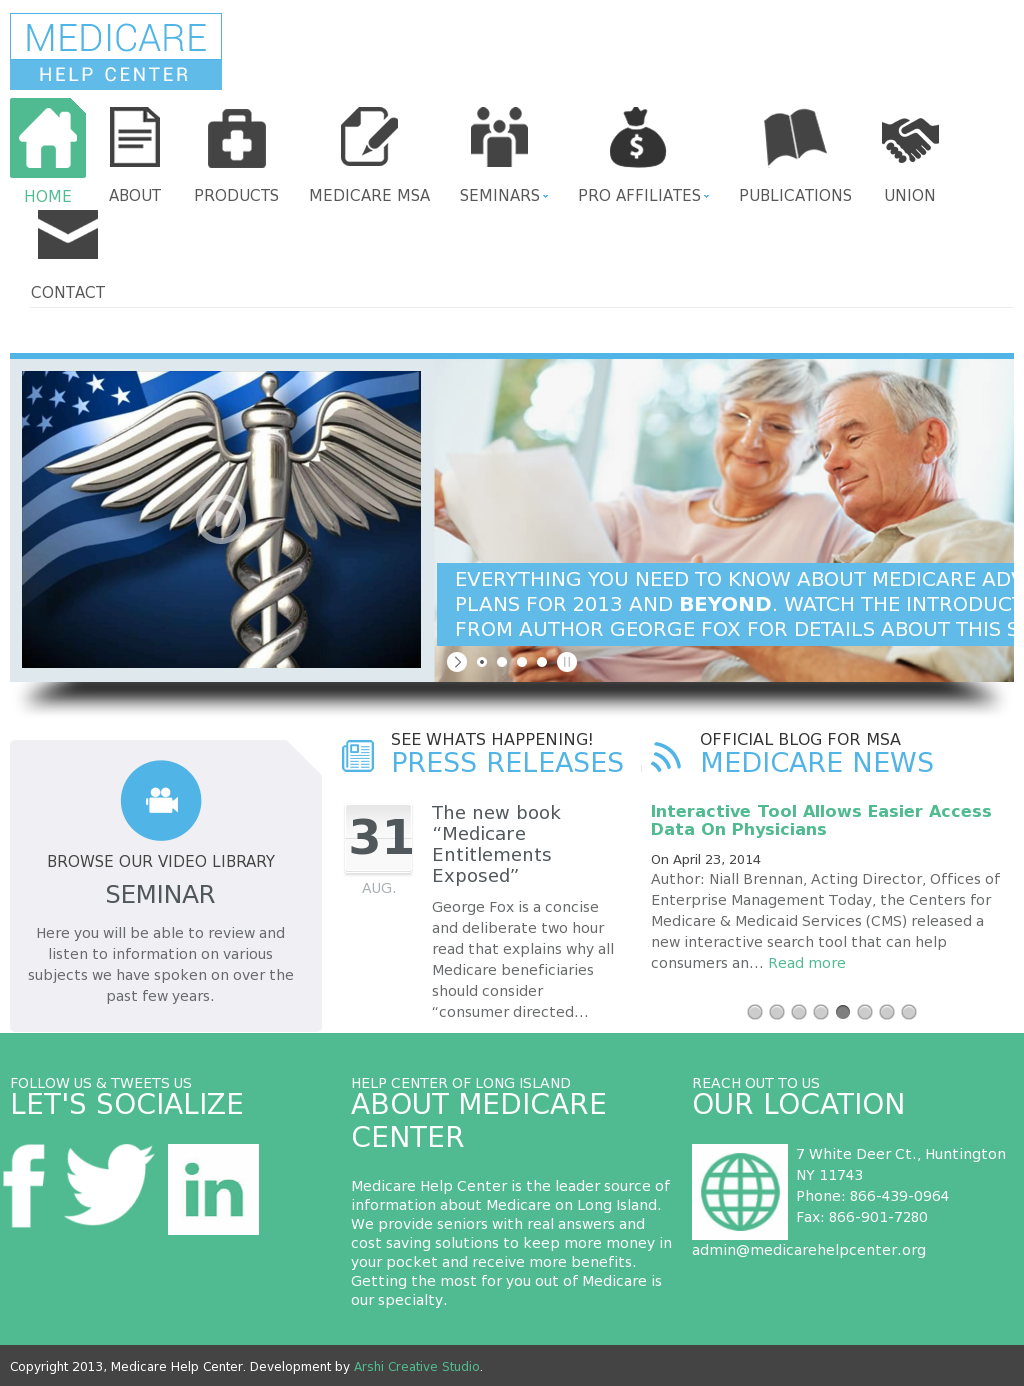 medicare help center competitors, revenue and employees - owler